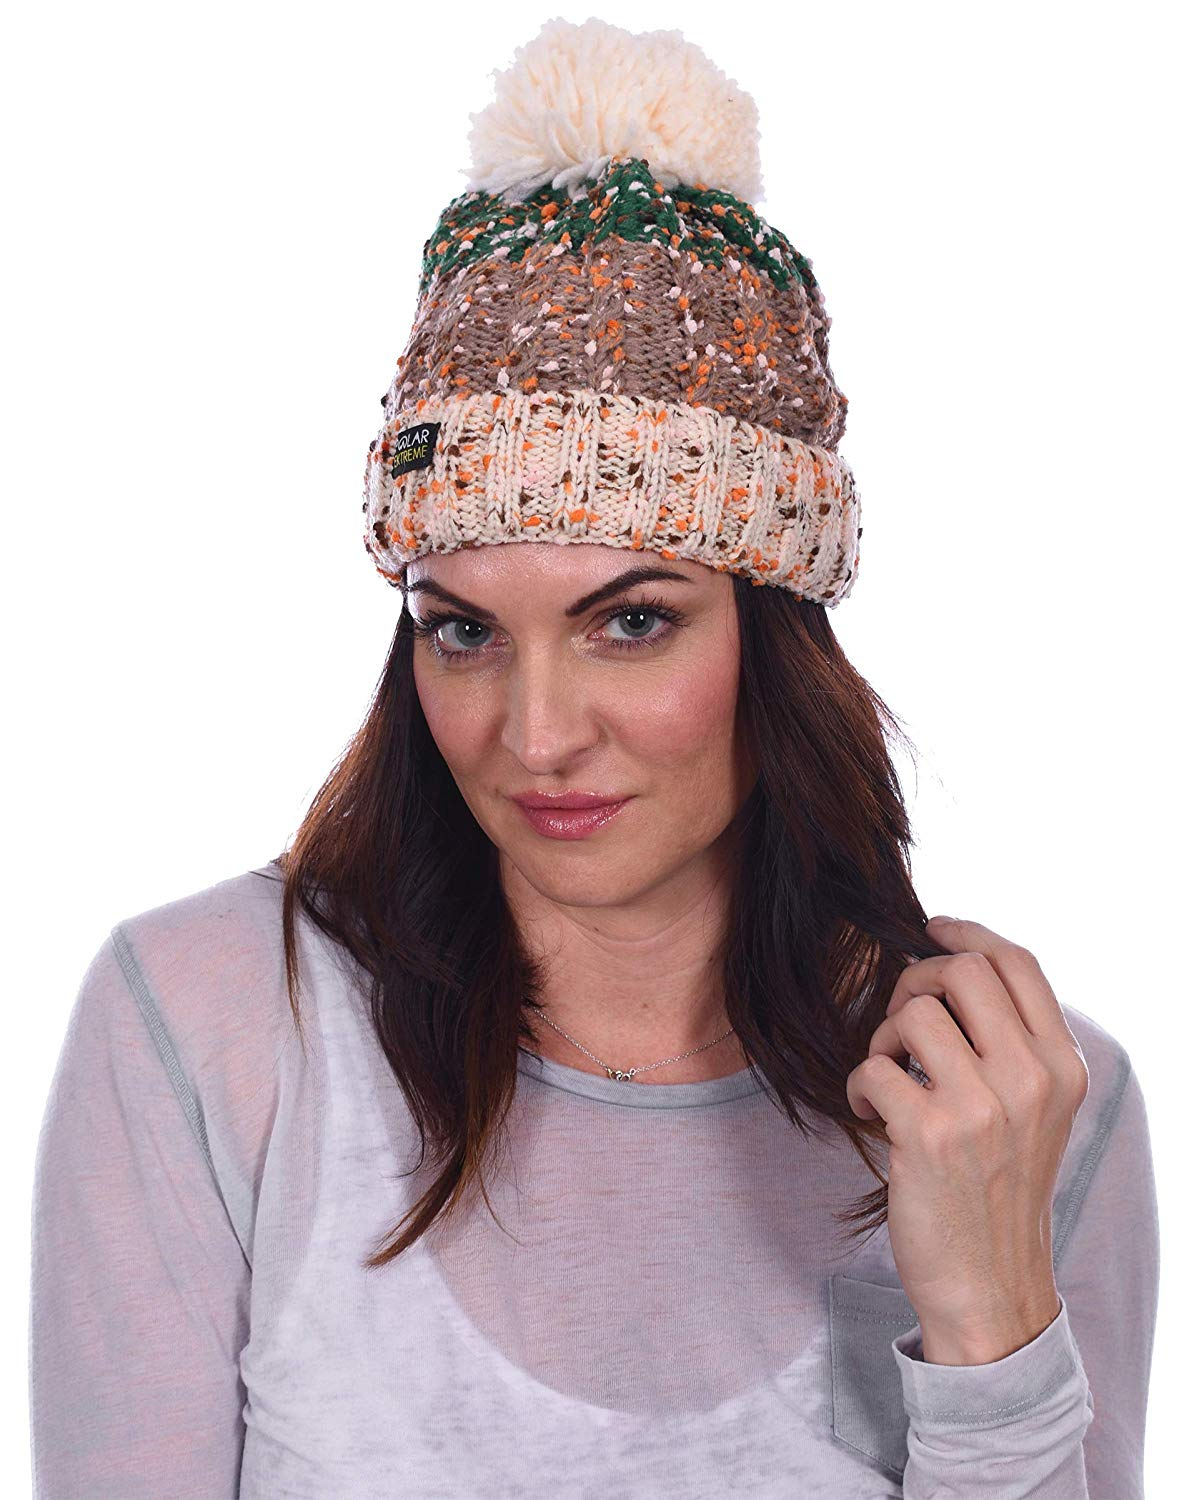 Cheap Free Knit Patterns For Women, find Free Knit Patterns